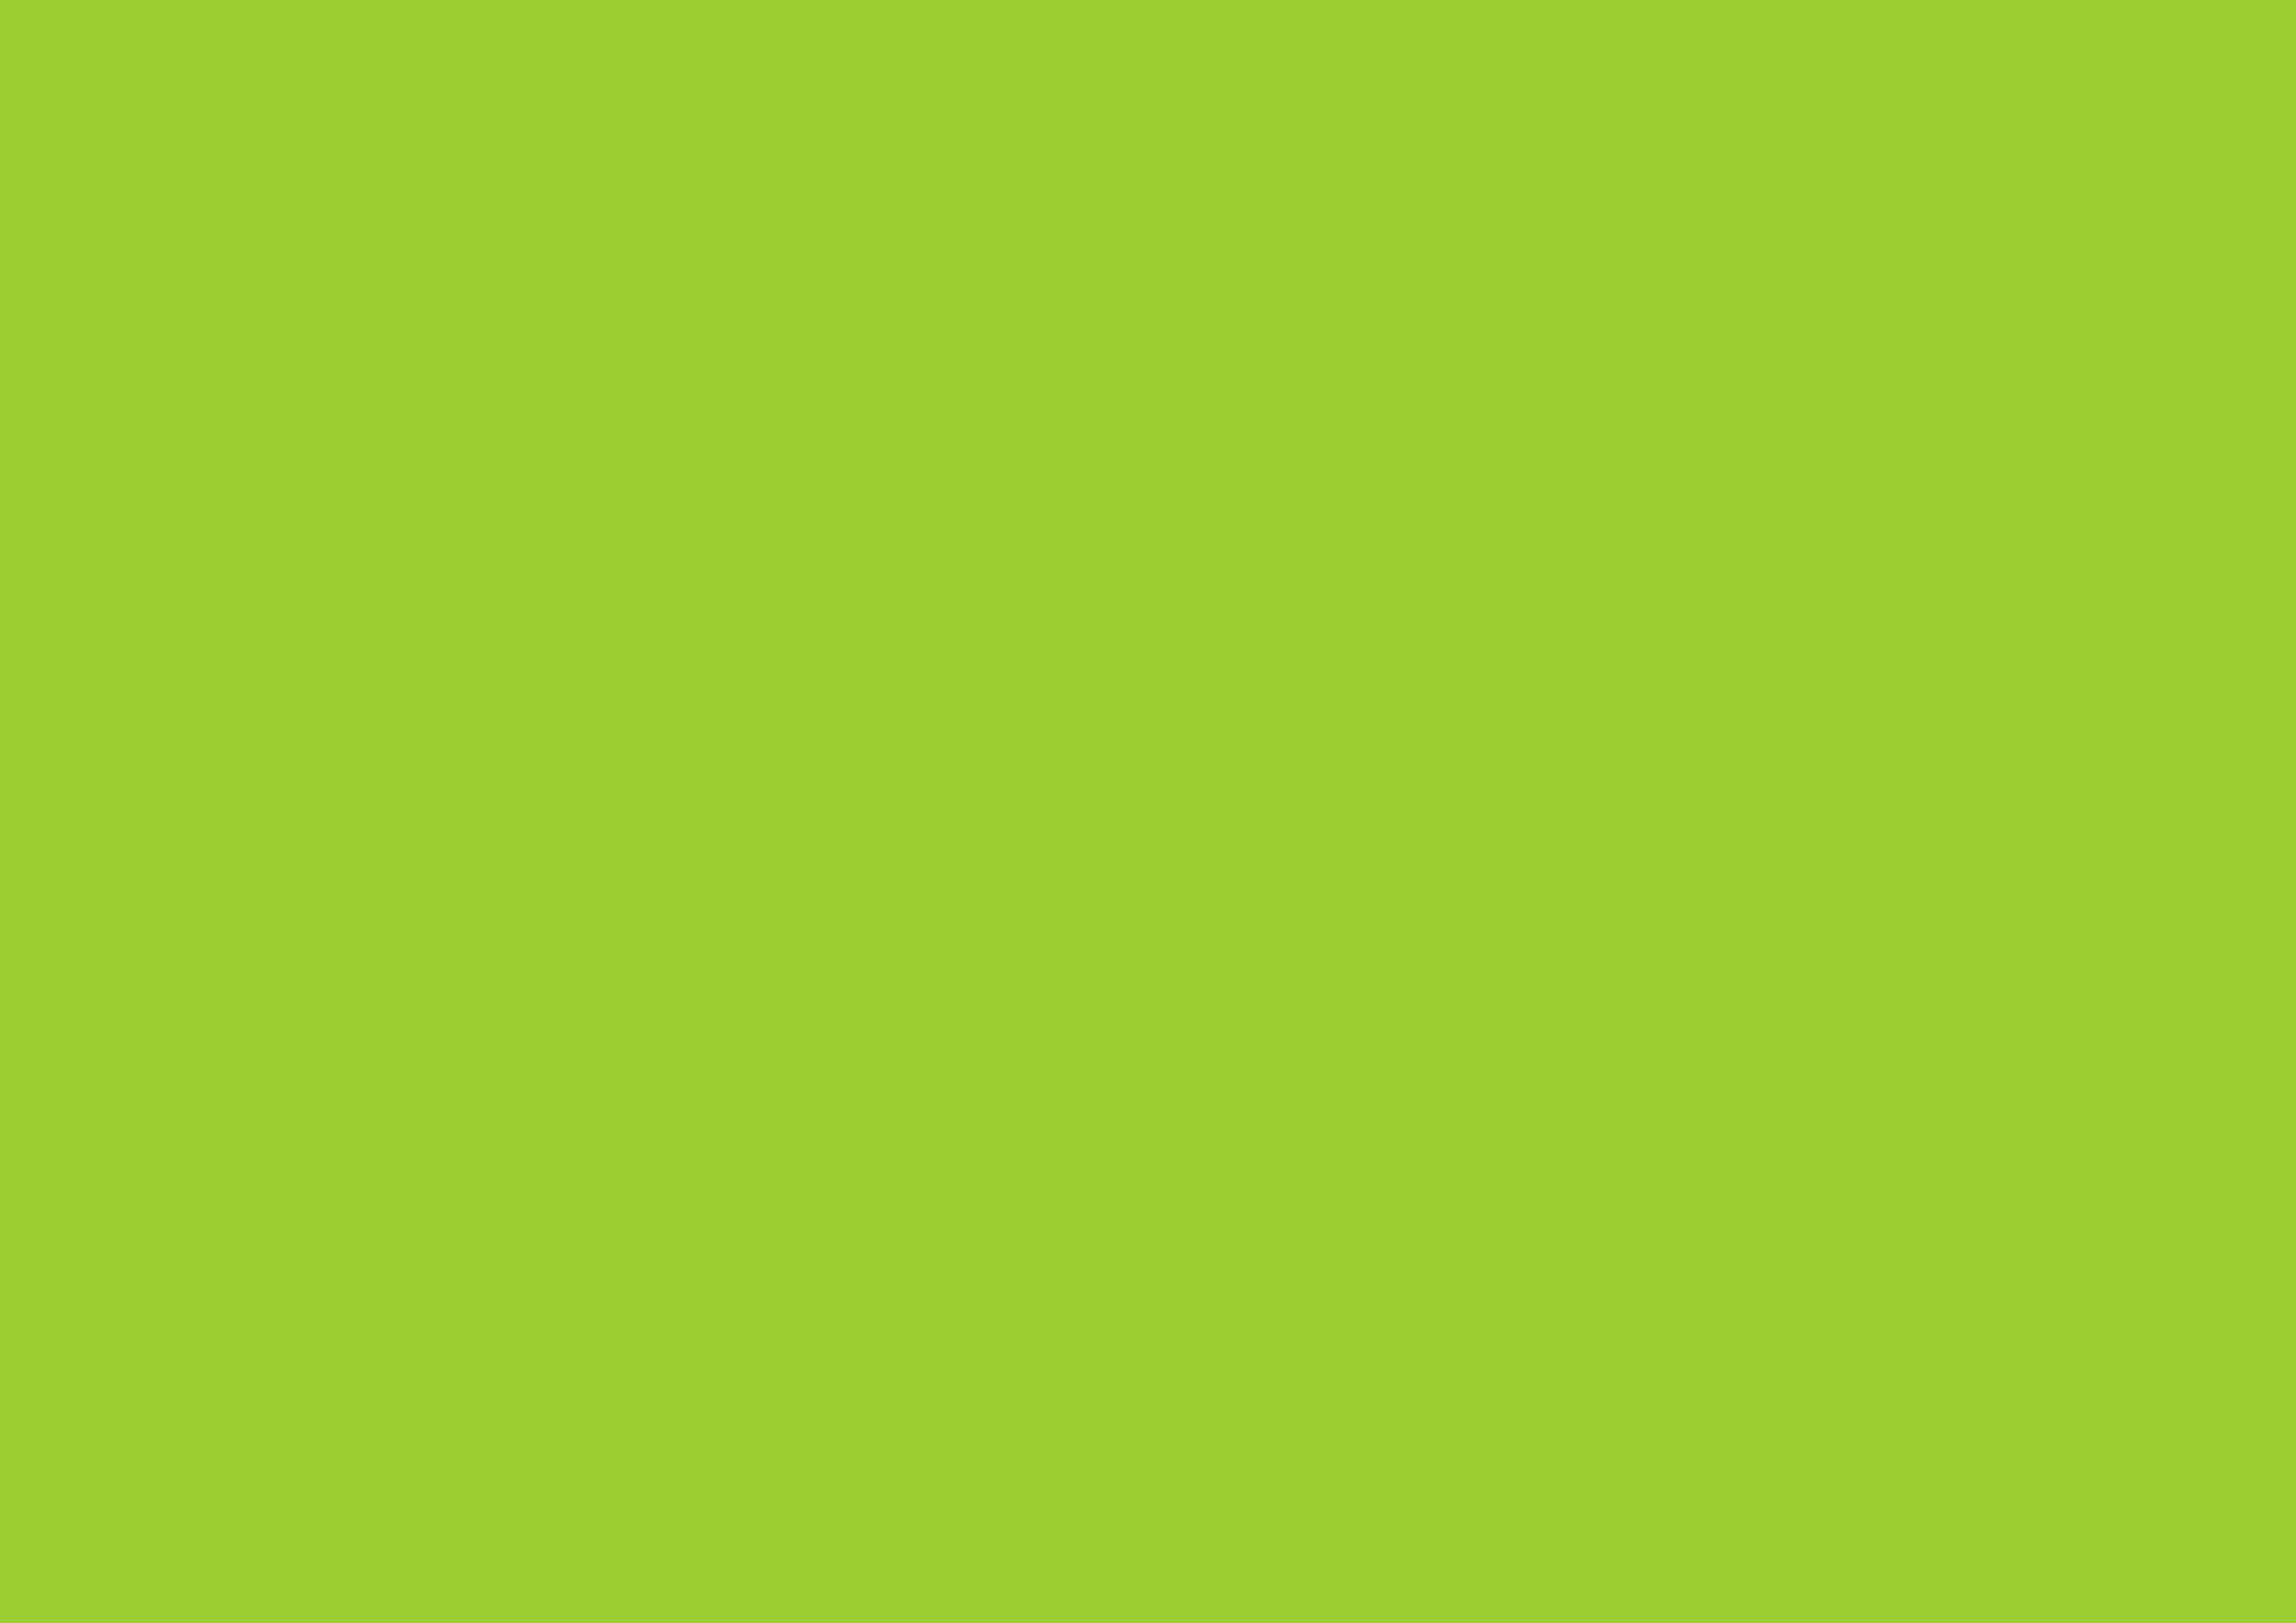 3508x2480 Yellow-green Solid Color Background